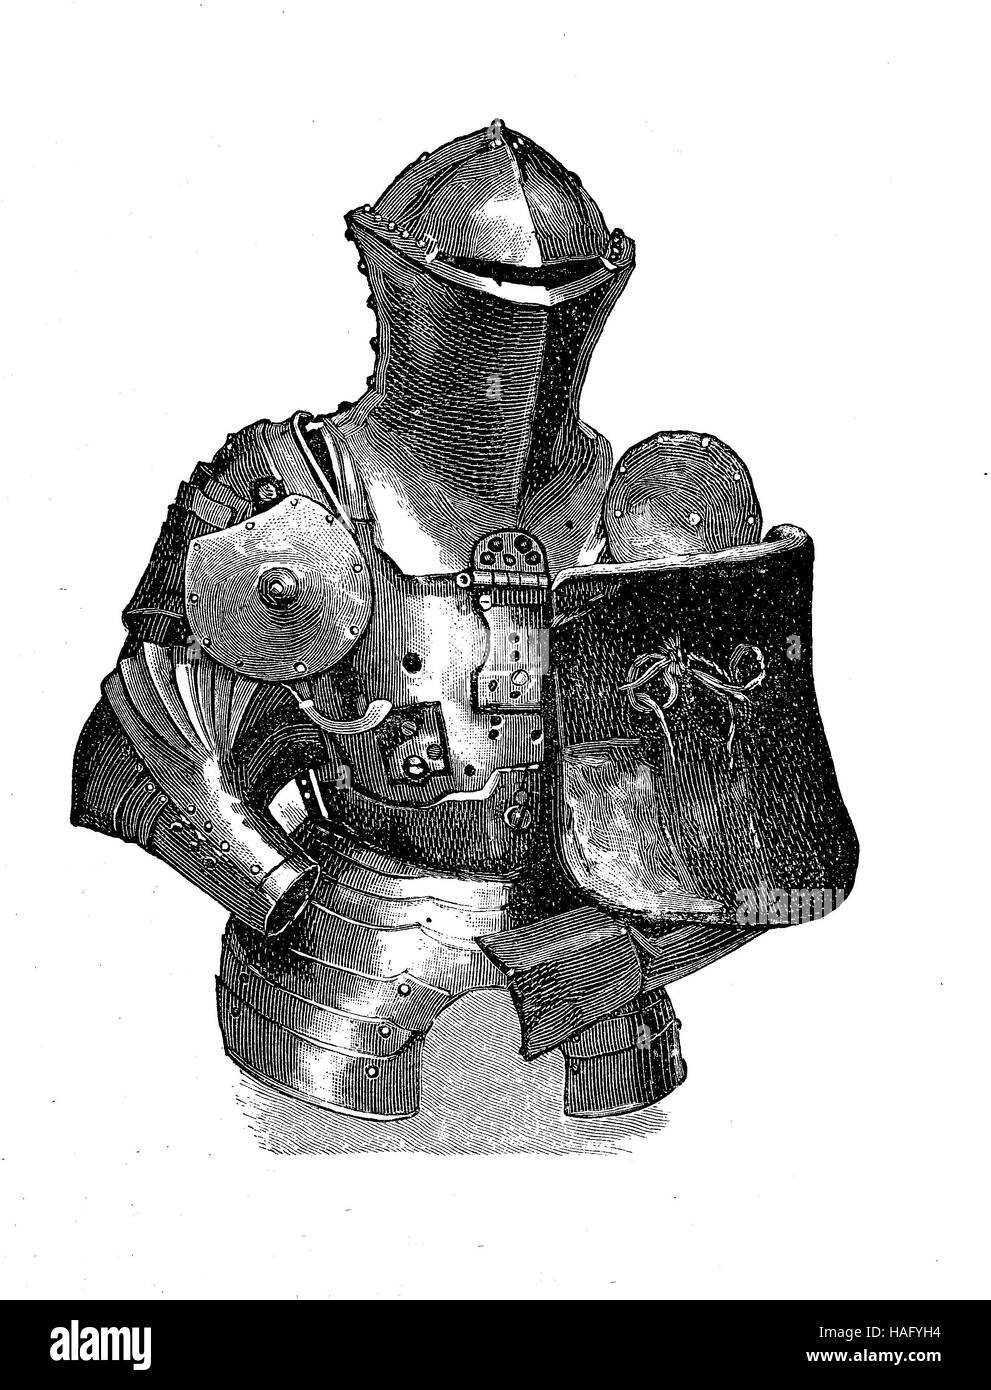 knights equipment, armor, at a tournament, middle of the 12th century, woodcut from the year 1880 - Stock Image